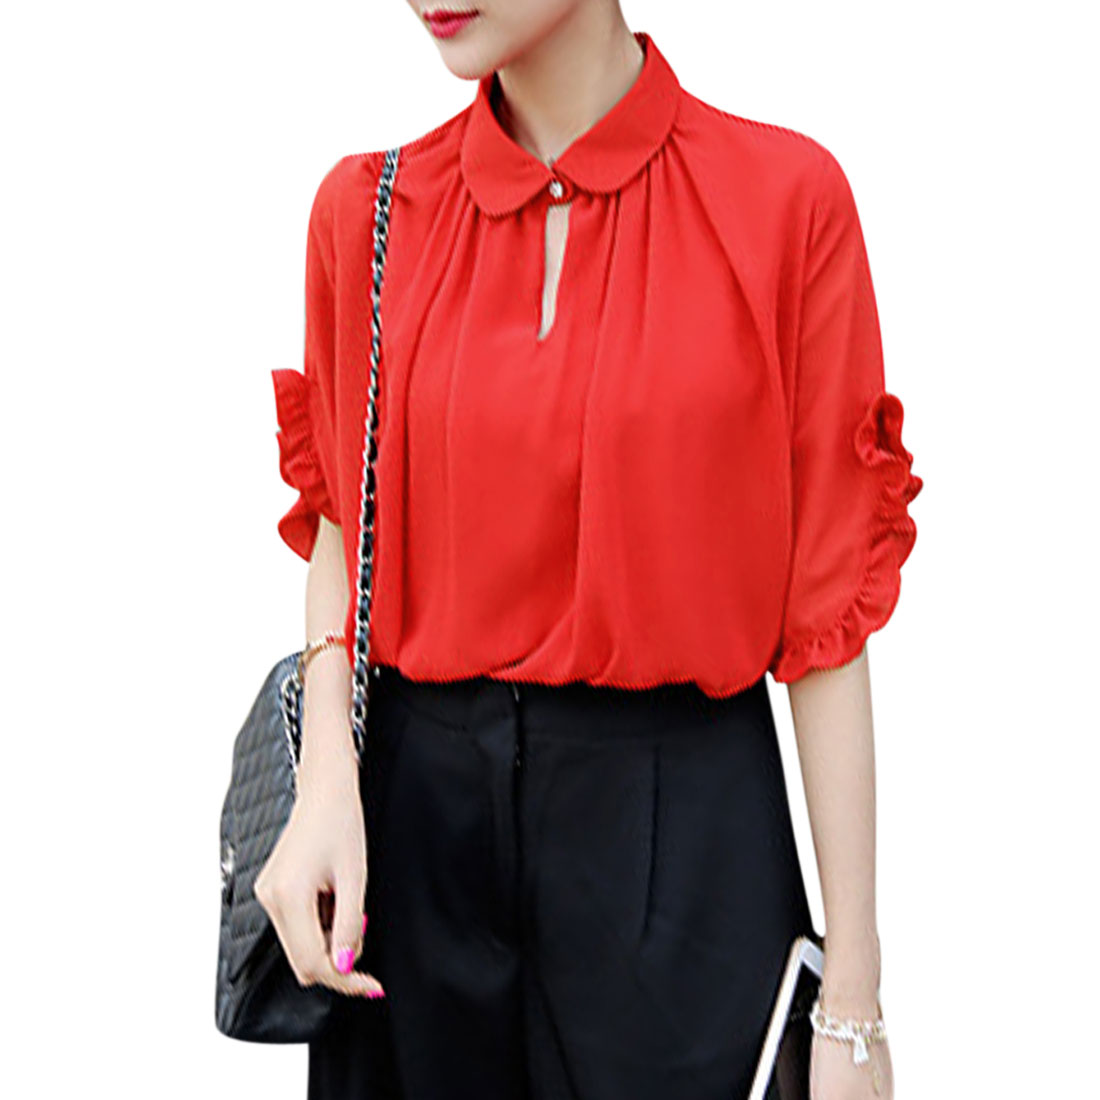 Women's Point Collar Elbow Sleeves Flouncing Cuffs Chiffon Shirts Red XS